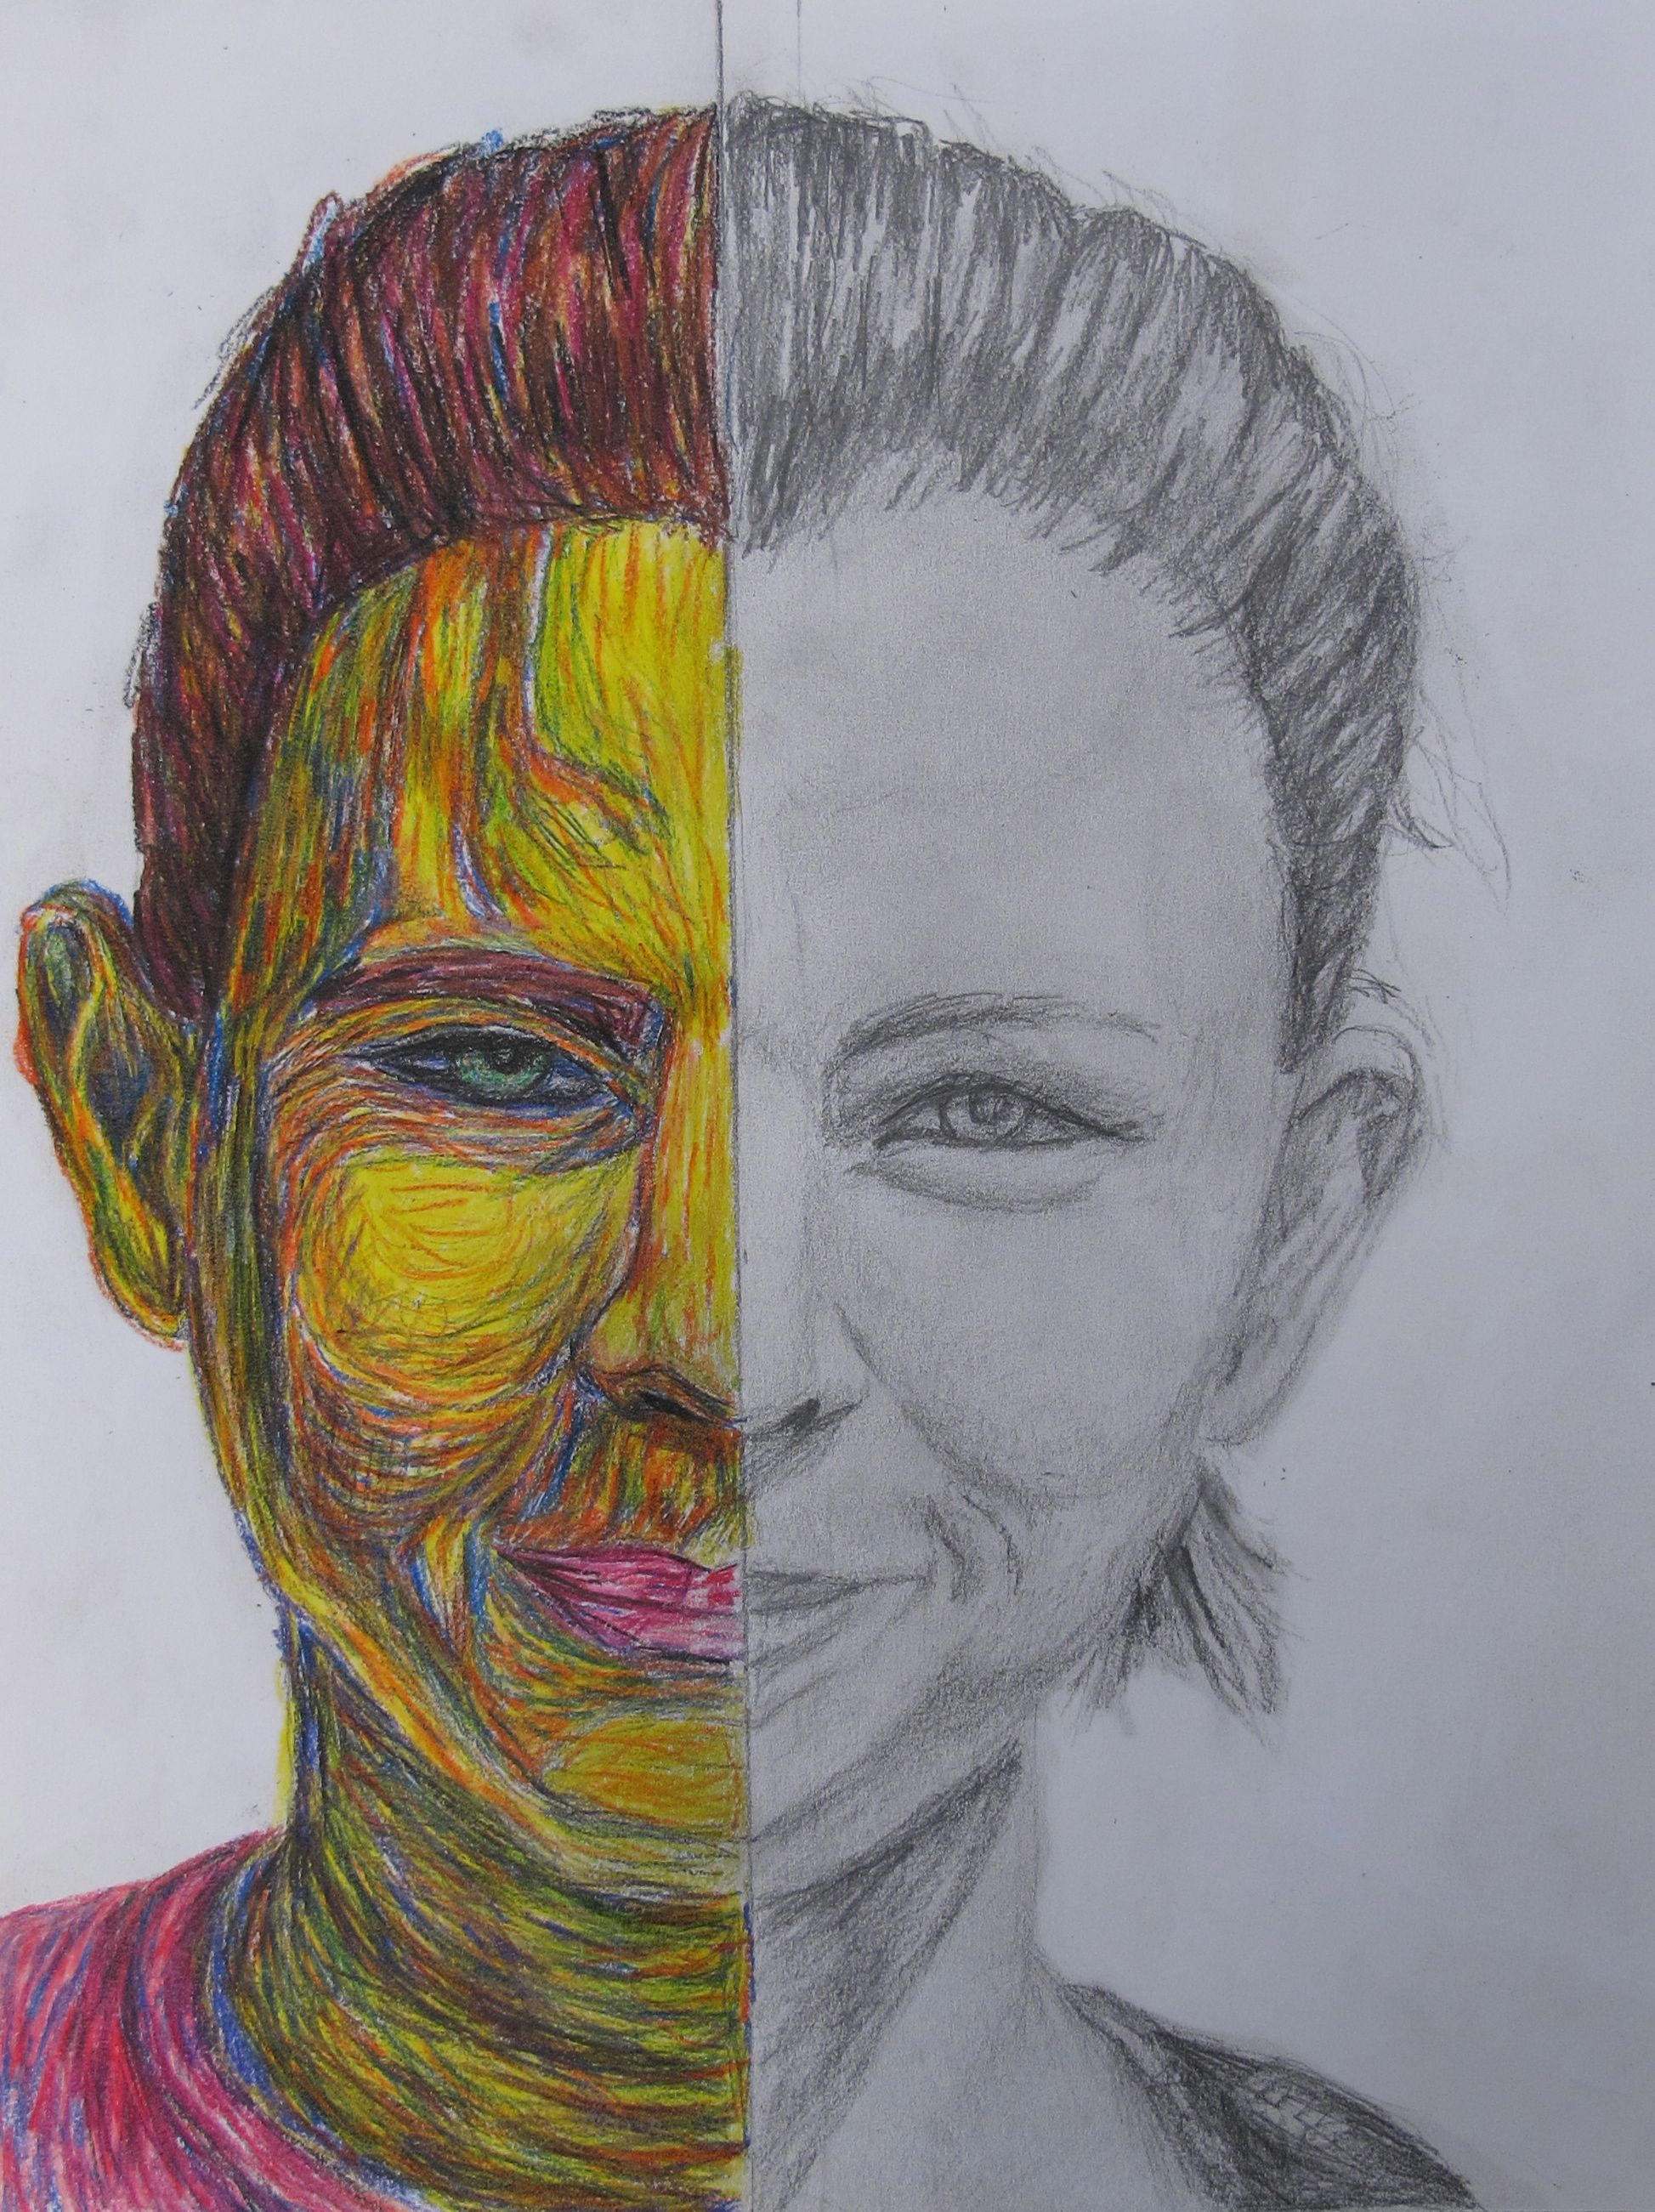 Co color to draw - Draw One Half Of Your Face In Just Pencil